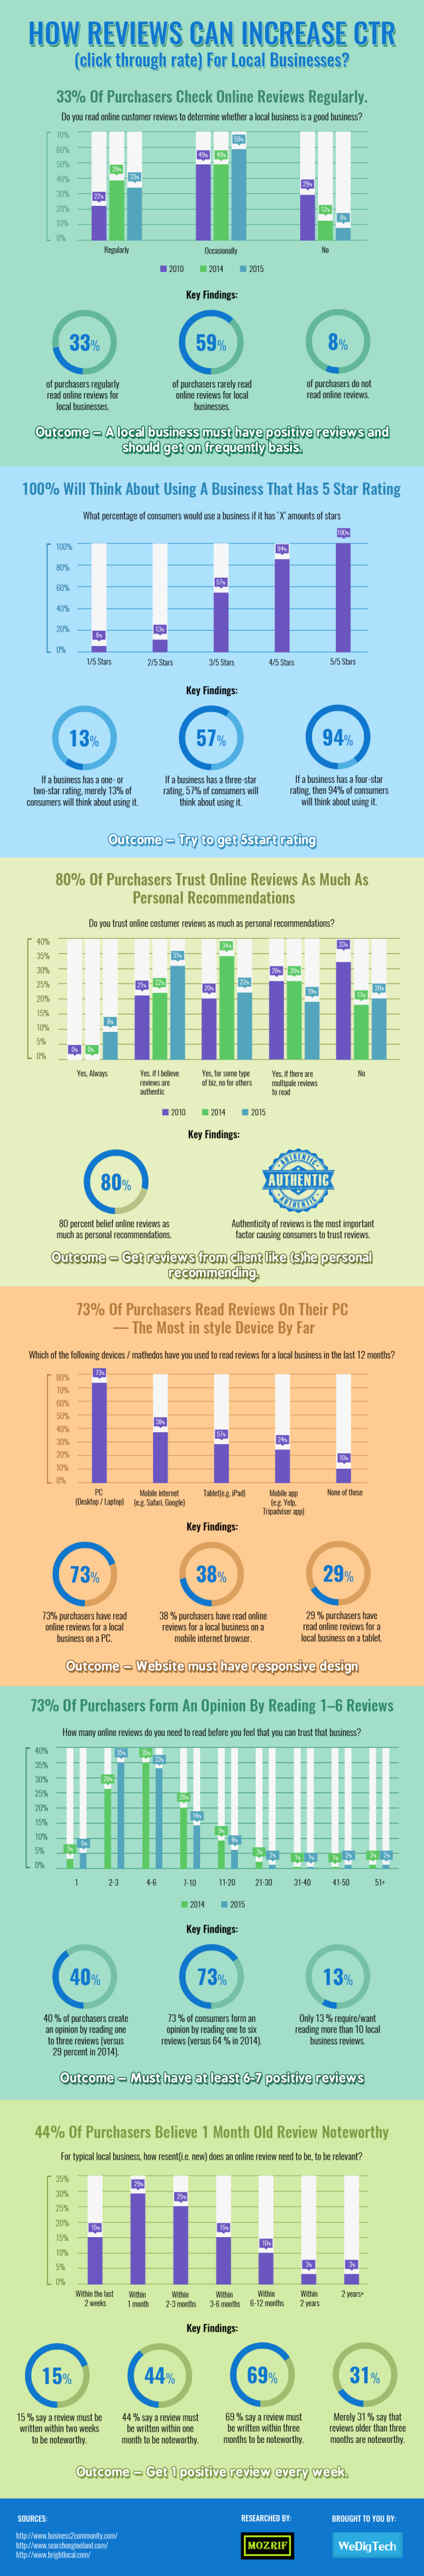 How Reviews Can Increase CTR (Click through Rate) For Local Businesses [Infographic]